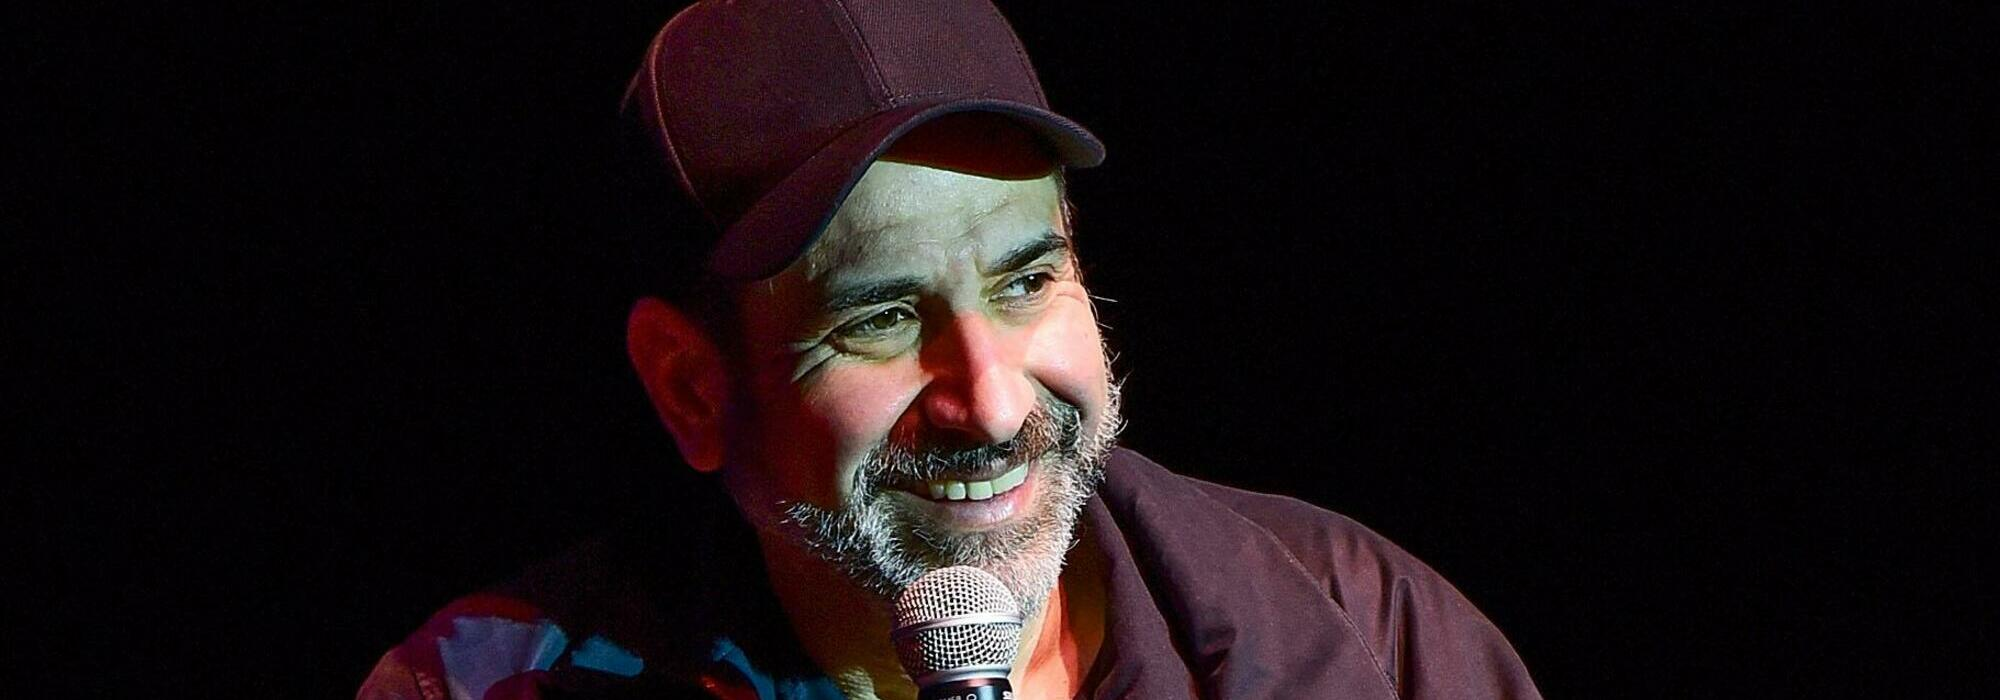 A Dave Attell live event